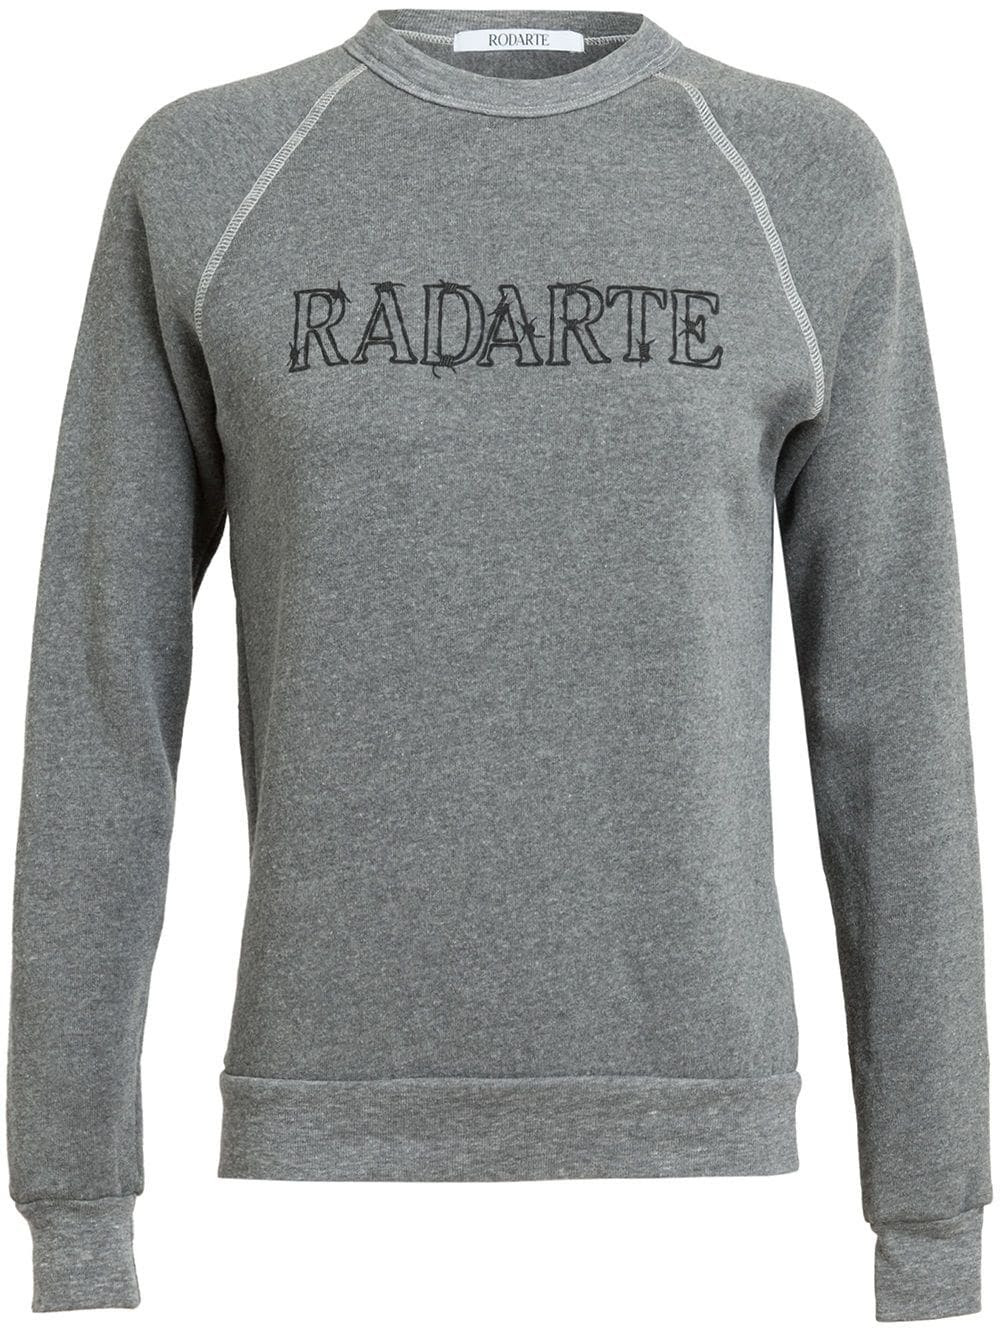 RODARTE - Barbed Wire Radarte Printed Sweatshirt 4